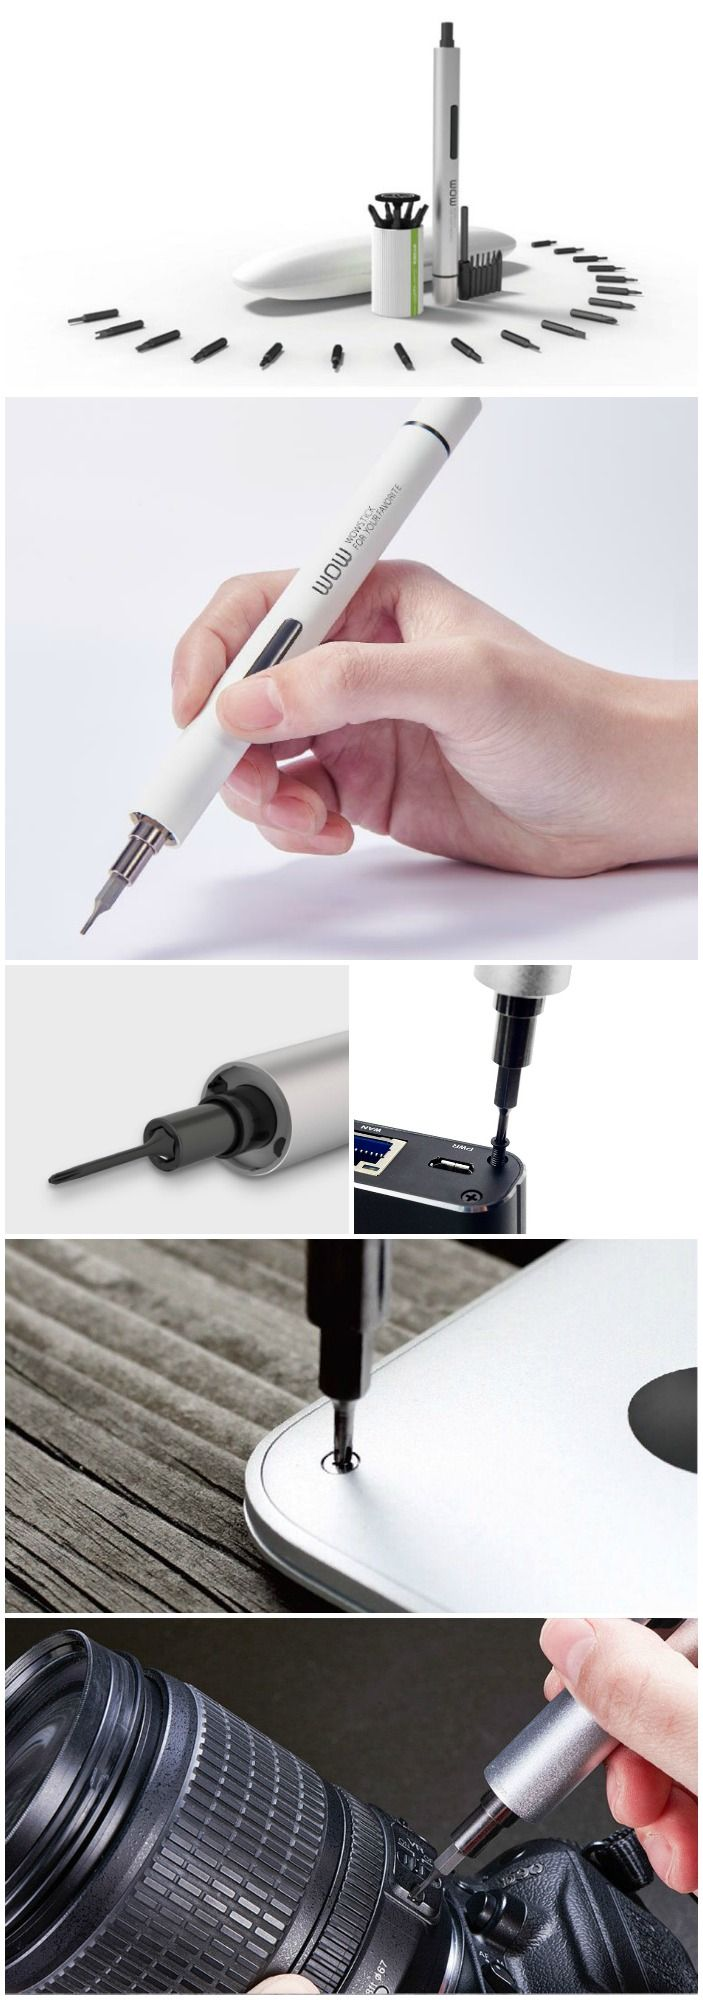 @u2cing The Wowstick is the first-of-its-kind portable cordless precision screwdriver perfect for home appliances, electronics as well as hobbies and crafts.